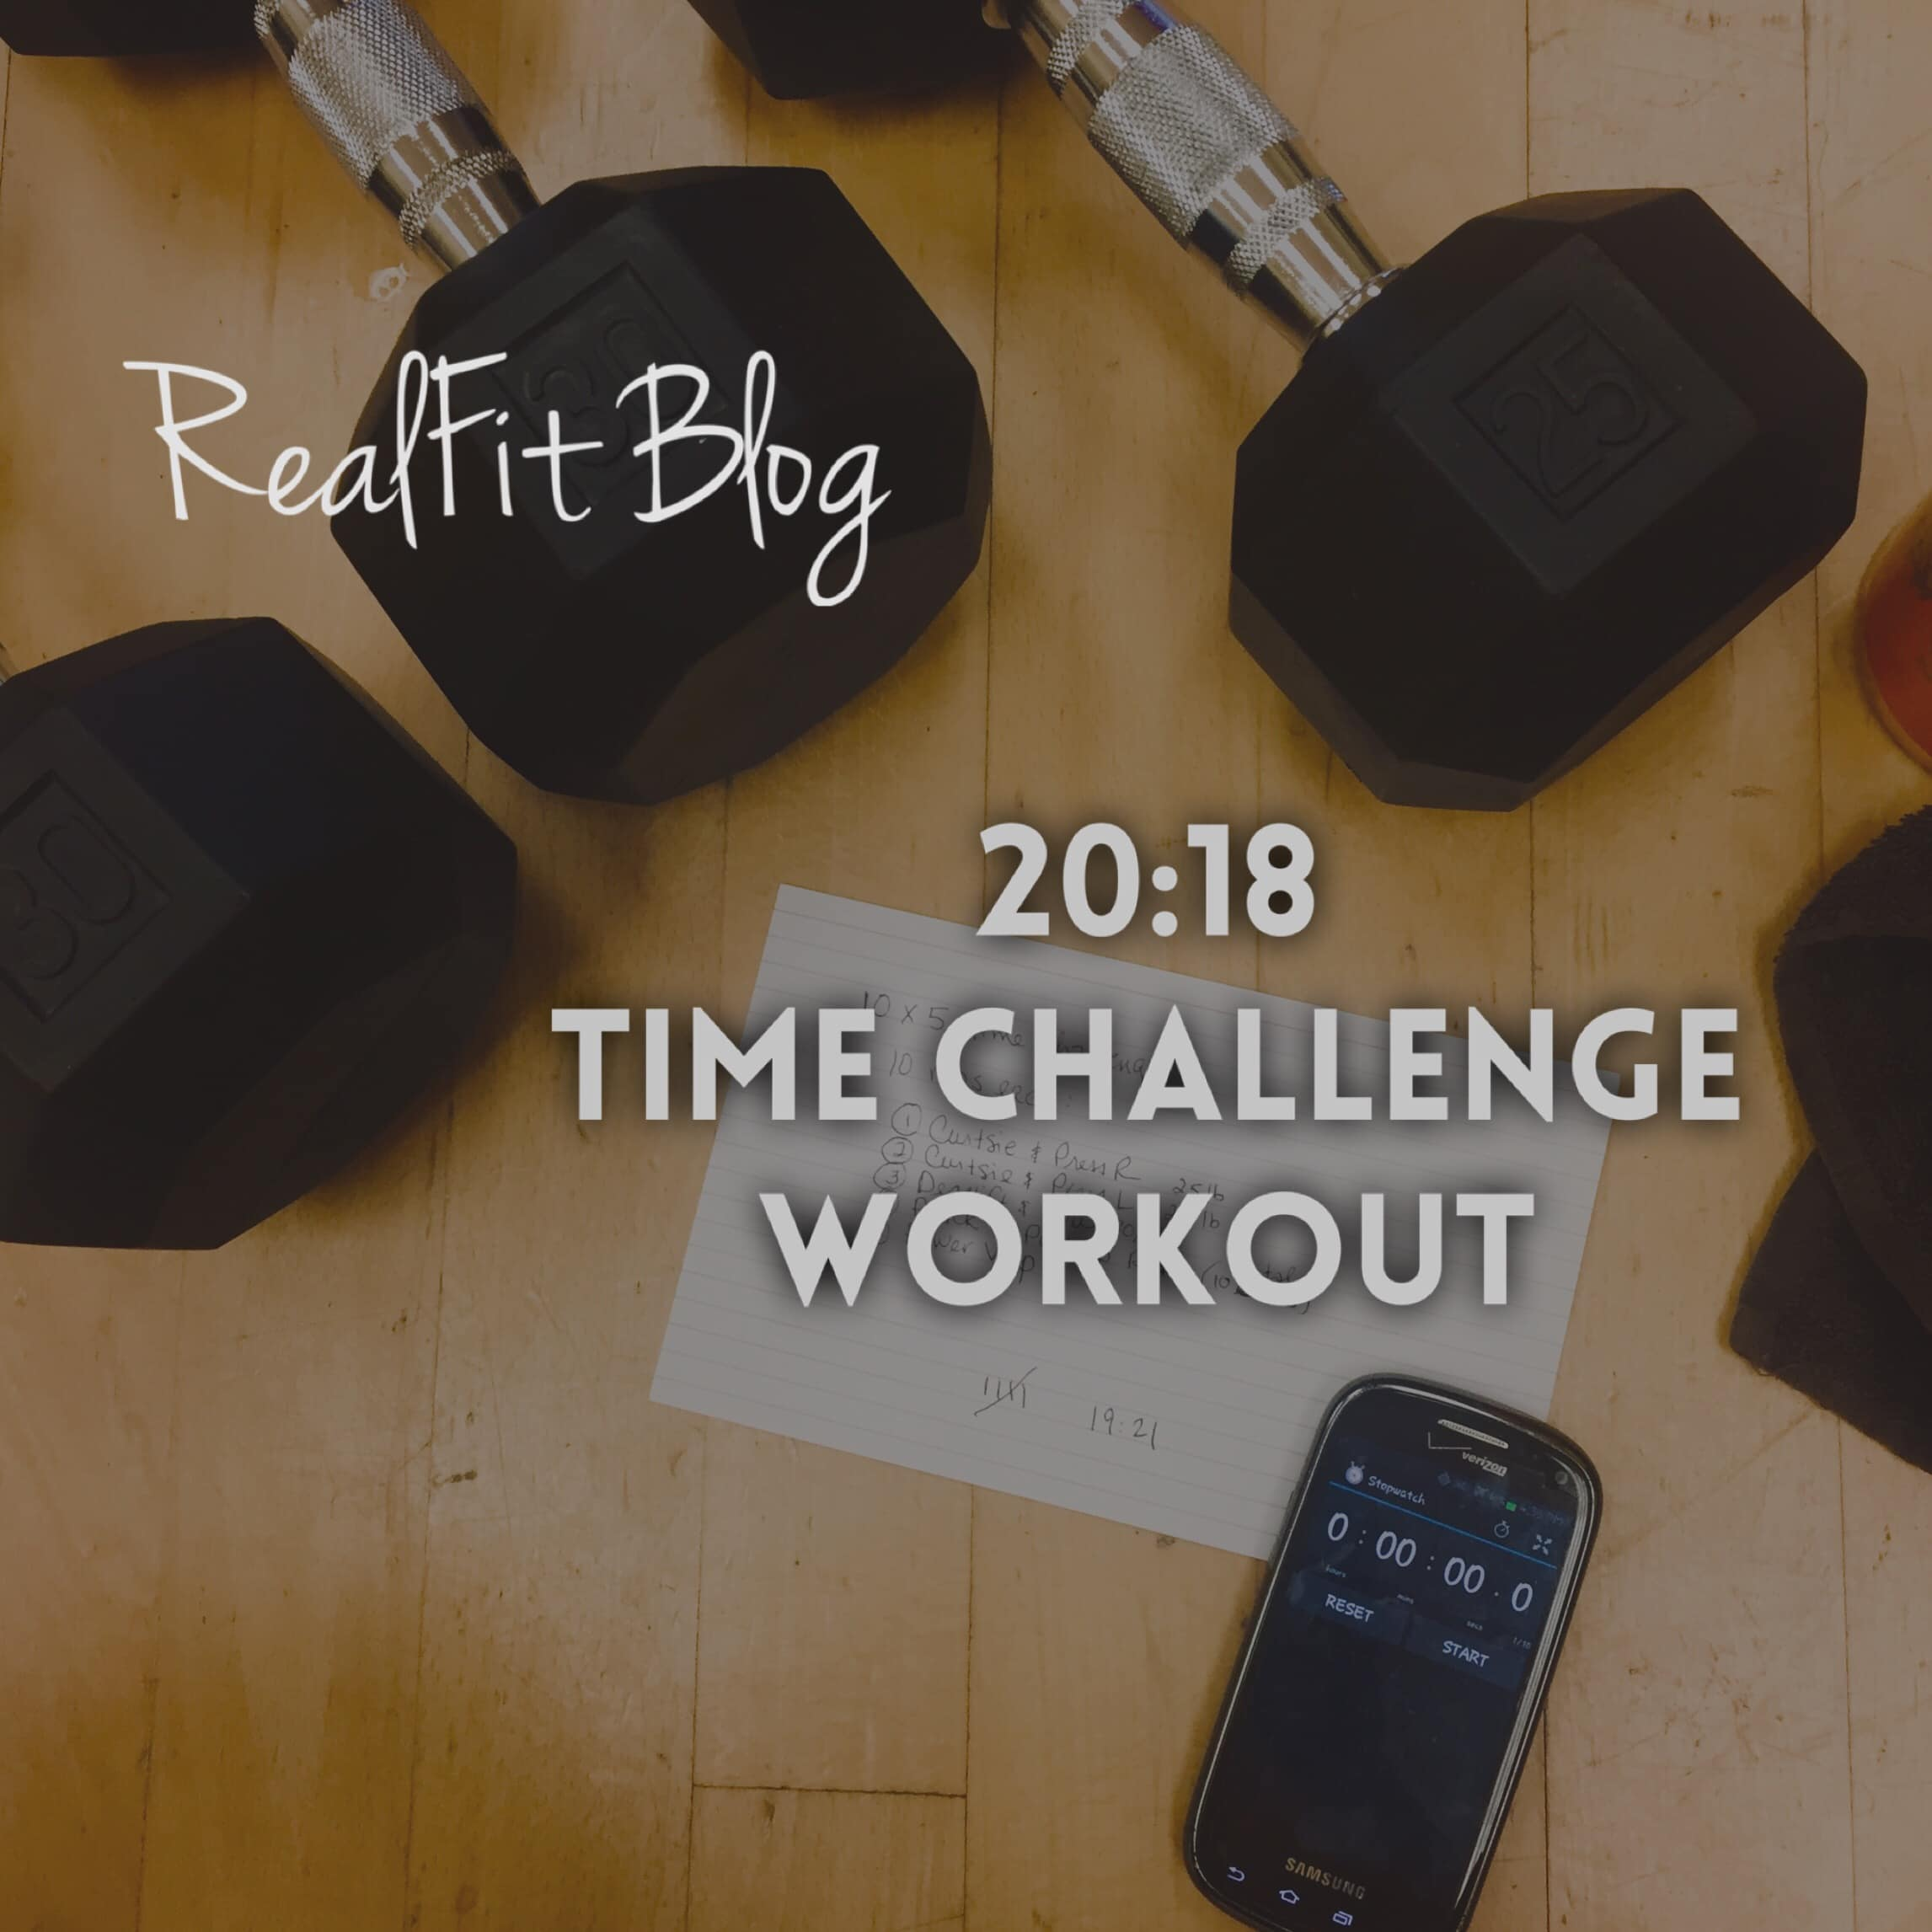 20:18 New Year's Time Challenge Workout